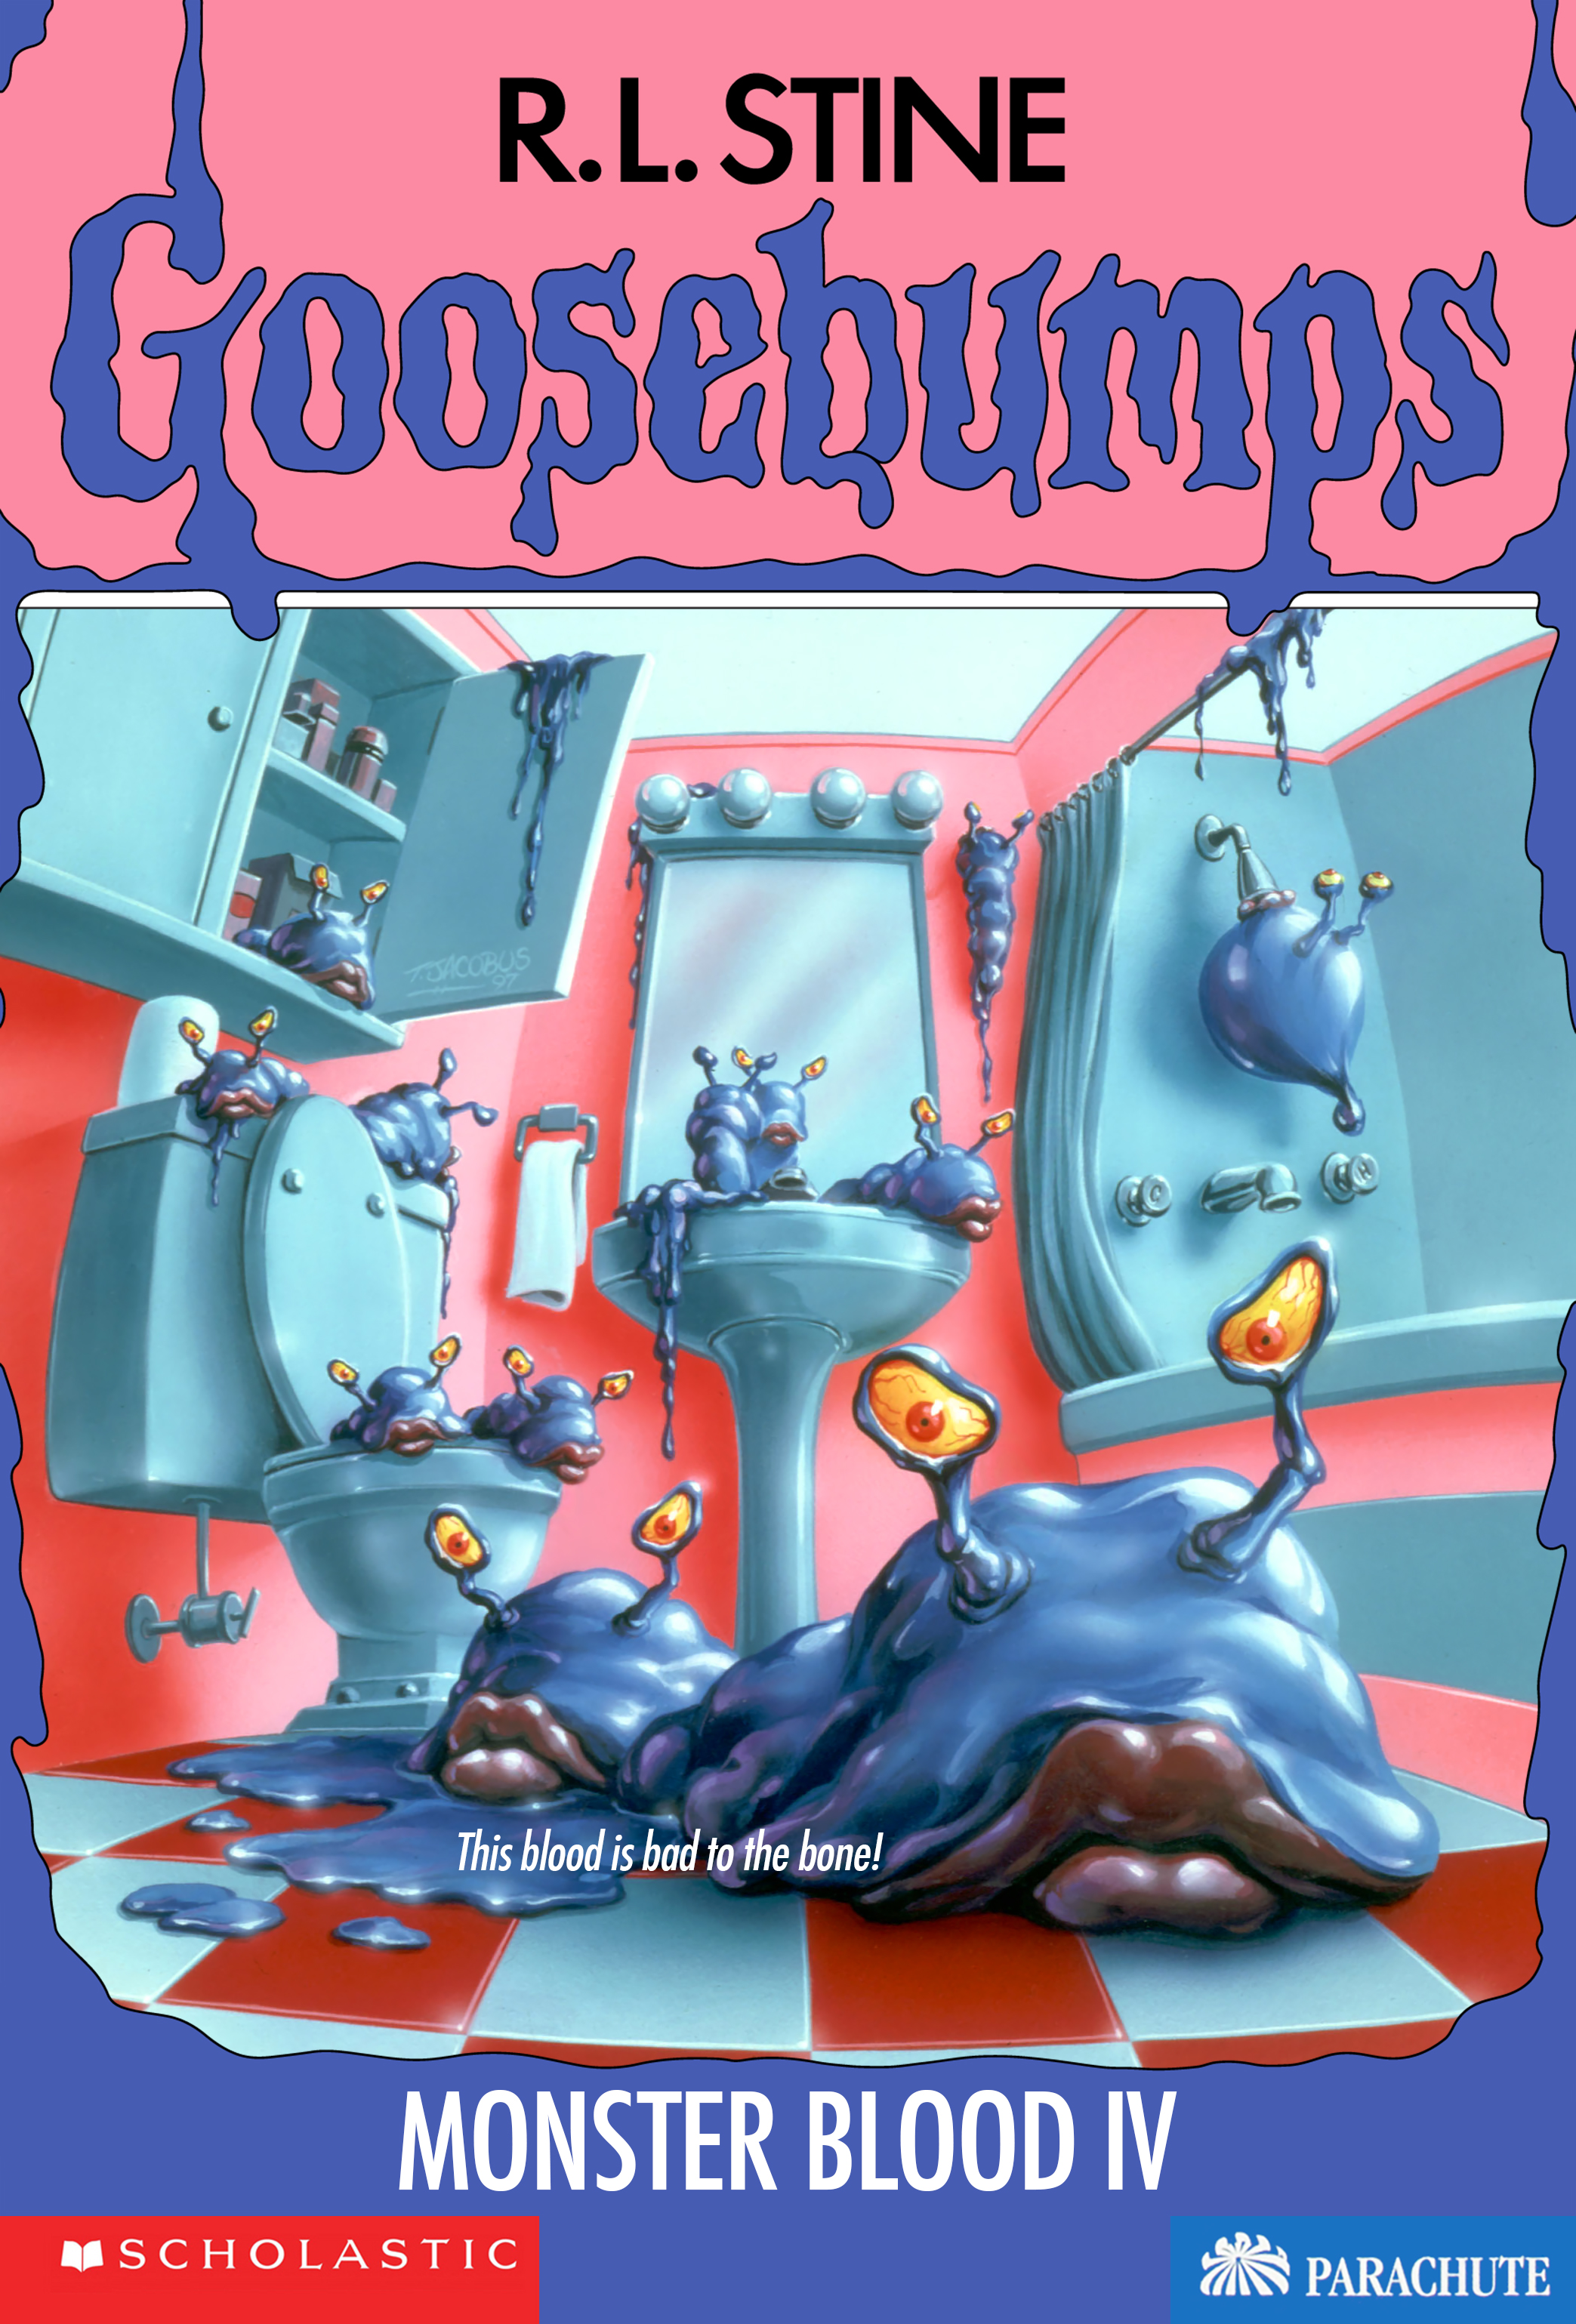 Goosebumps 56 the curse of camp cold lake ebook array monster blood iv goosebumps wiki fandom powered by wikia rh goosebumps wikia fandeluxe Image collections